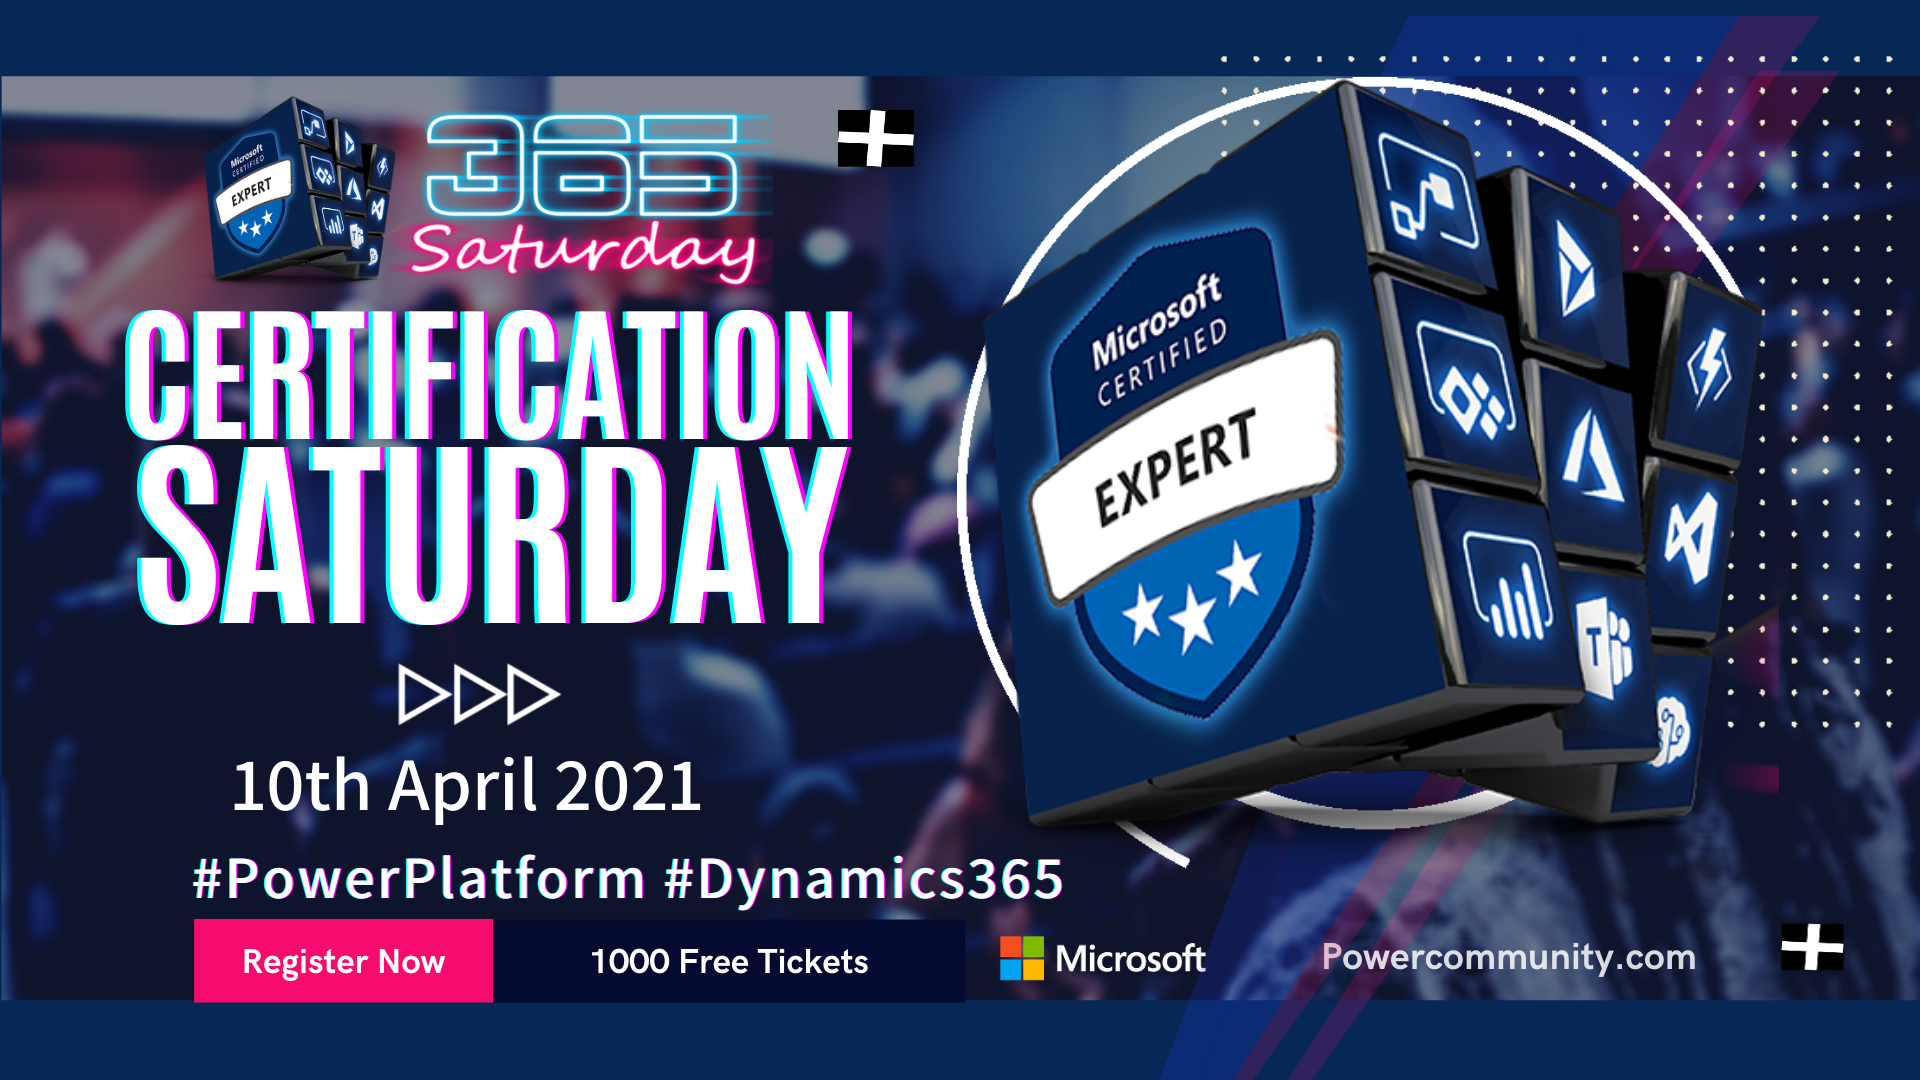 Microsoft Certification Saturday 2021